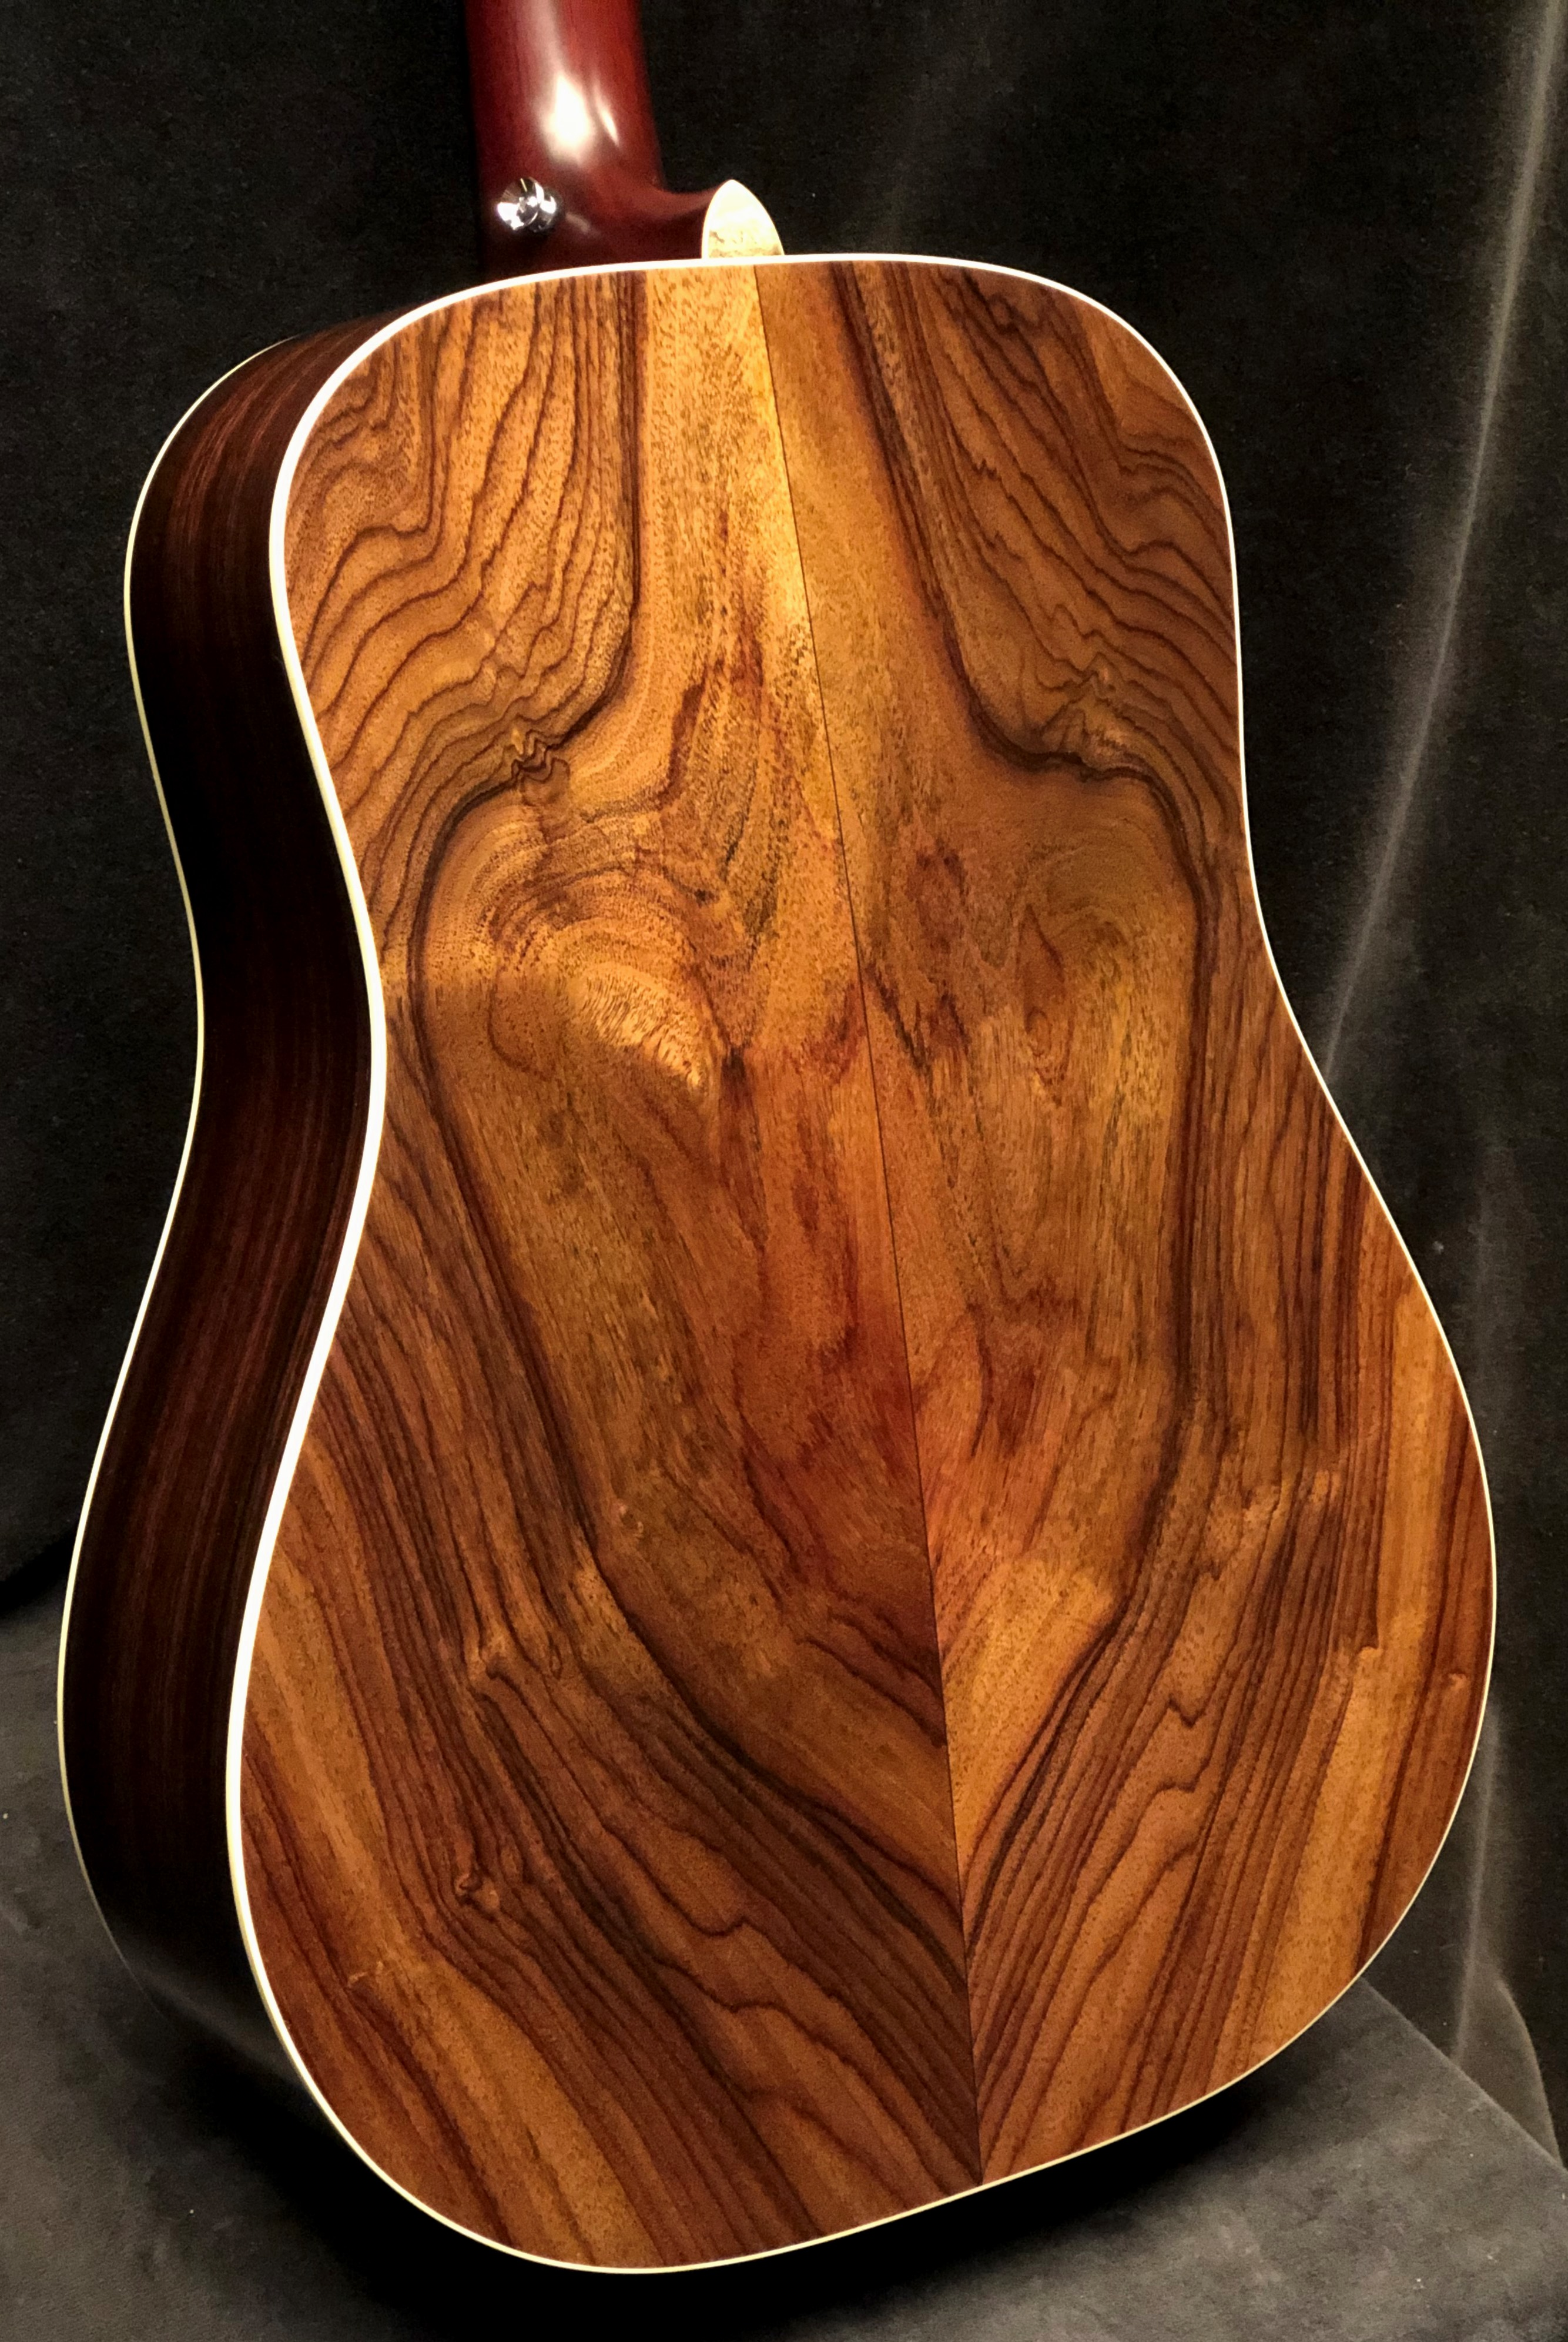 Just shipped Monday December 24th: Custom D/PW Figured Indian Rosewood